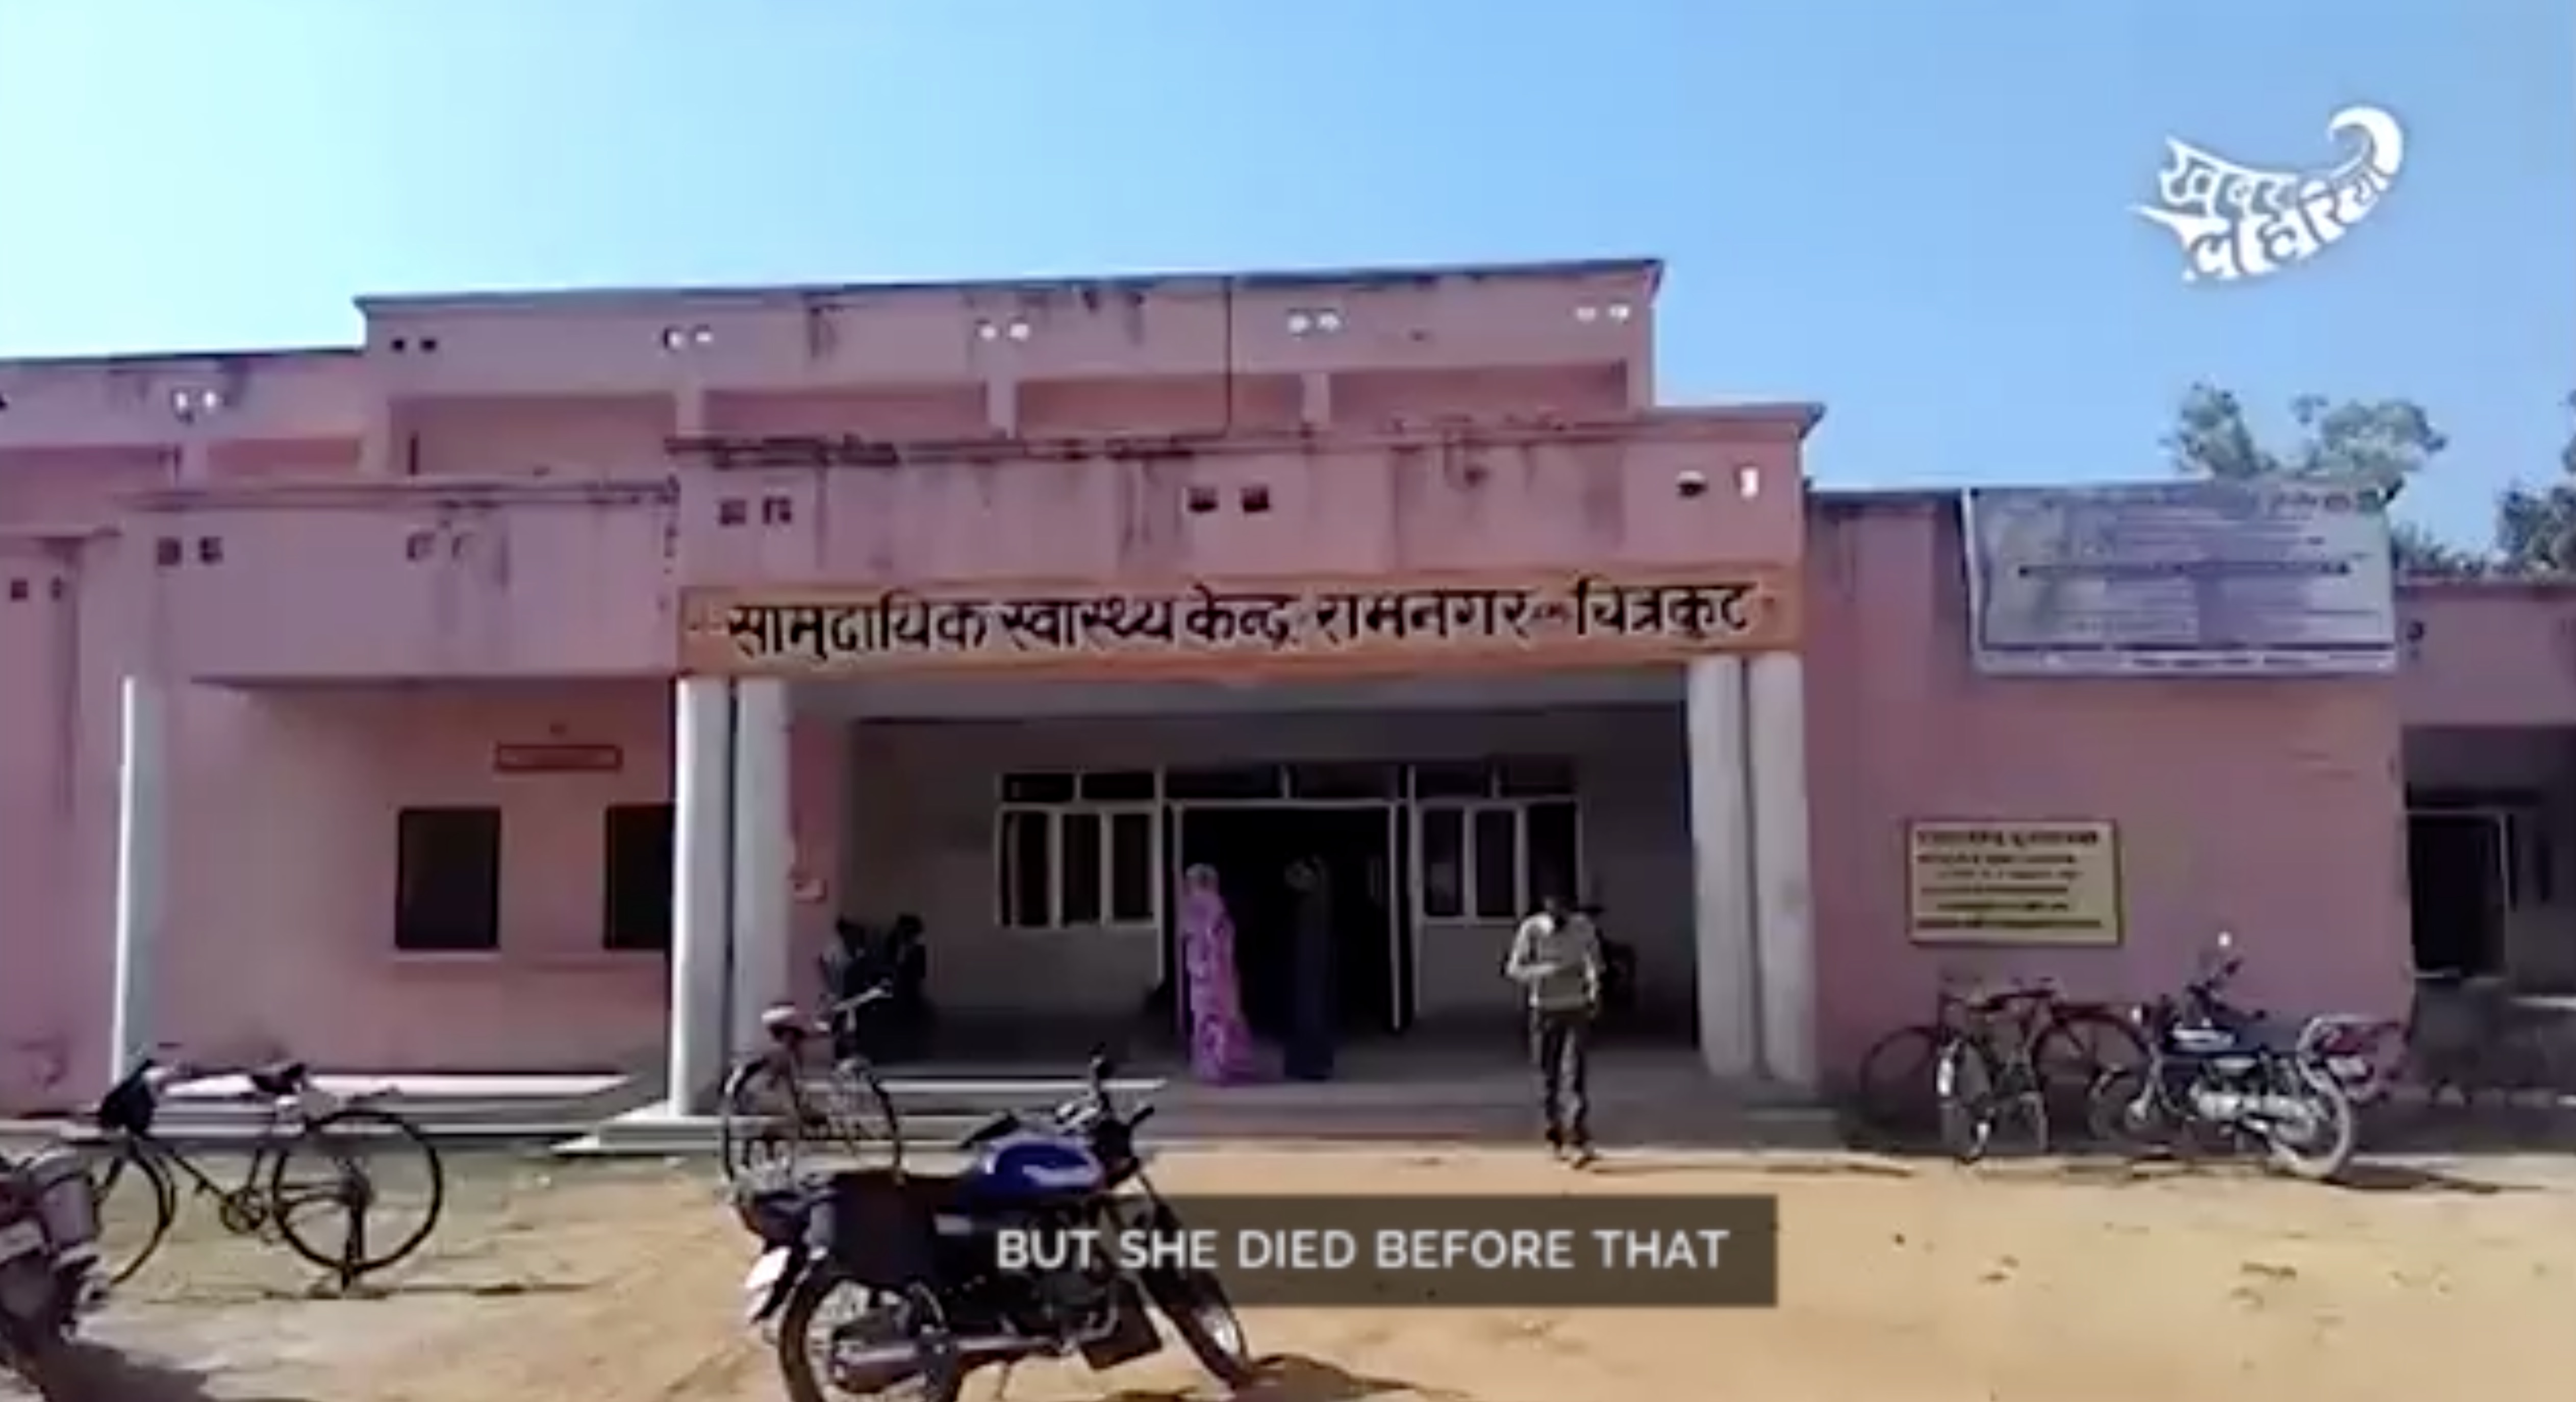 Watch: Sterilisation Turns Fatal at a Government Hospital in Bundelkhand